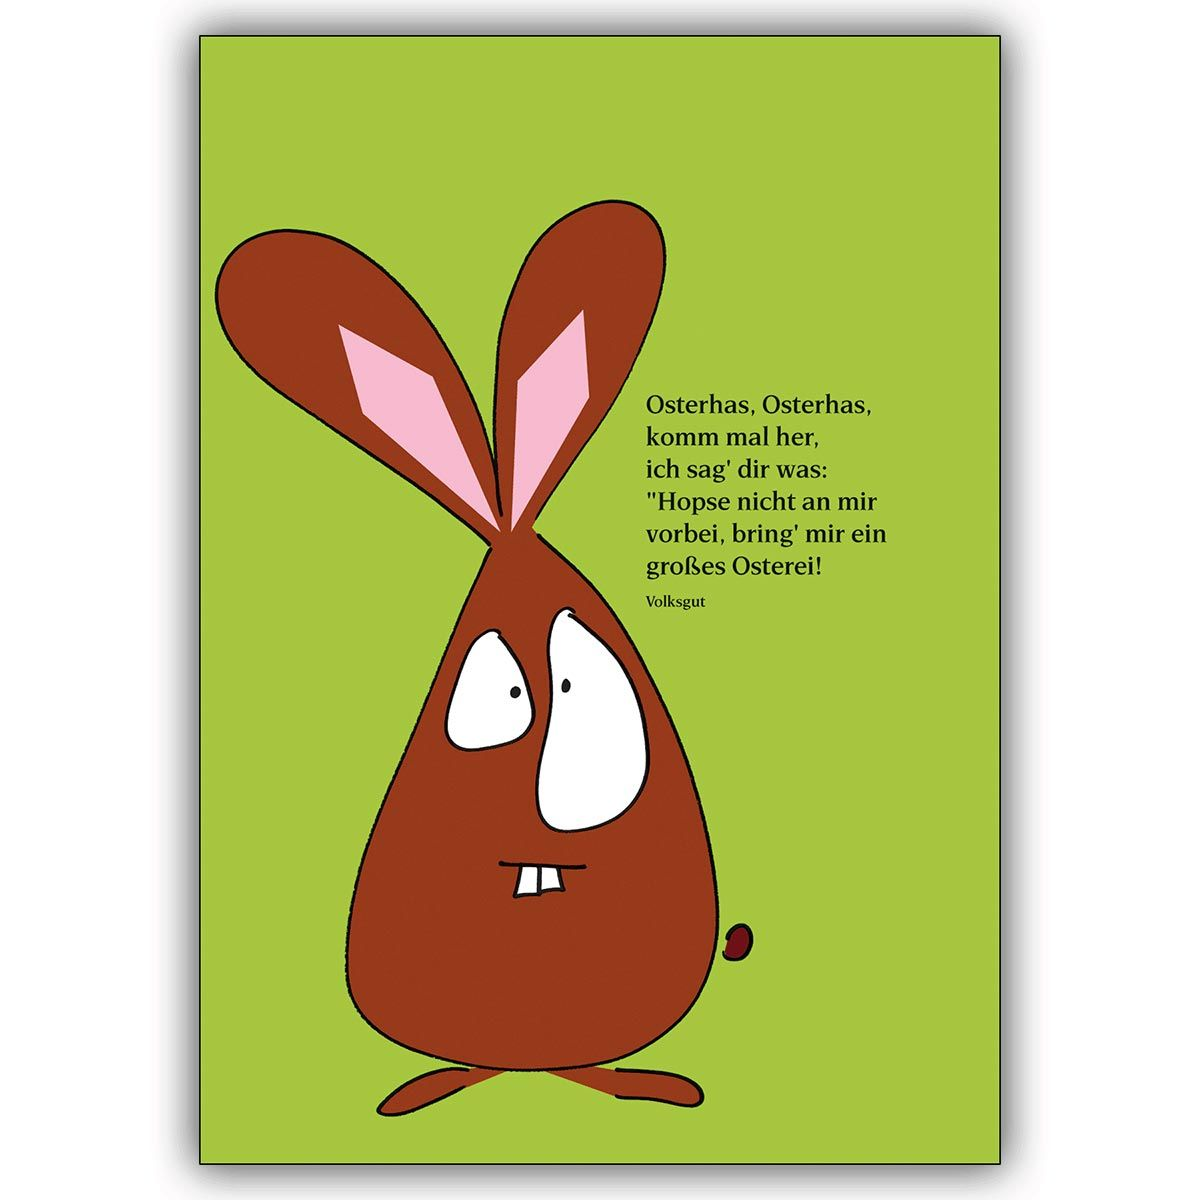 lustige illustrierte osterhasen osterkarte in grasgr n mit spruch 1 easter cards pinterest. Black Bedroom Furniture Sets. Home Design Ideas